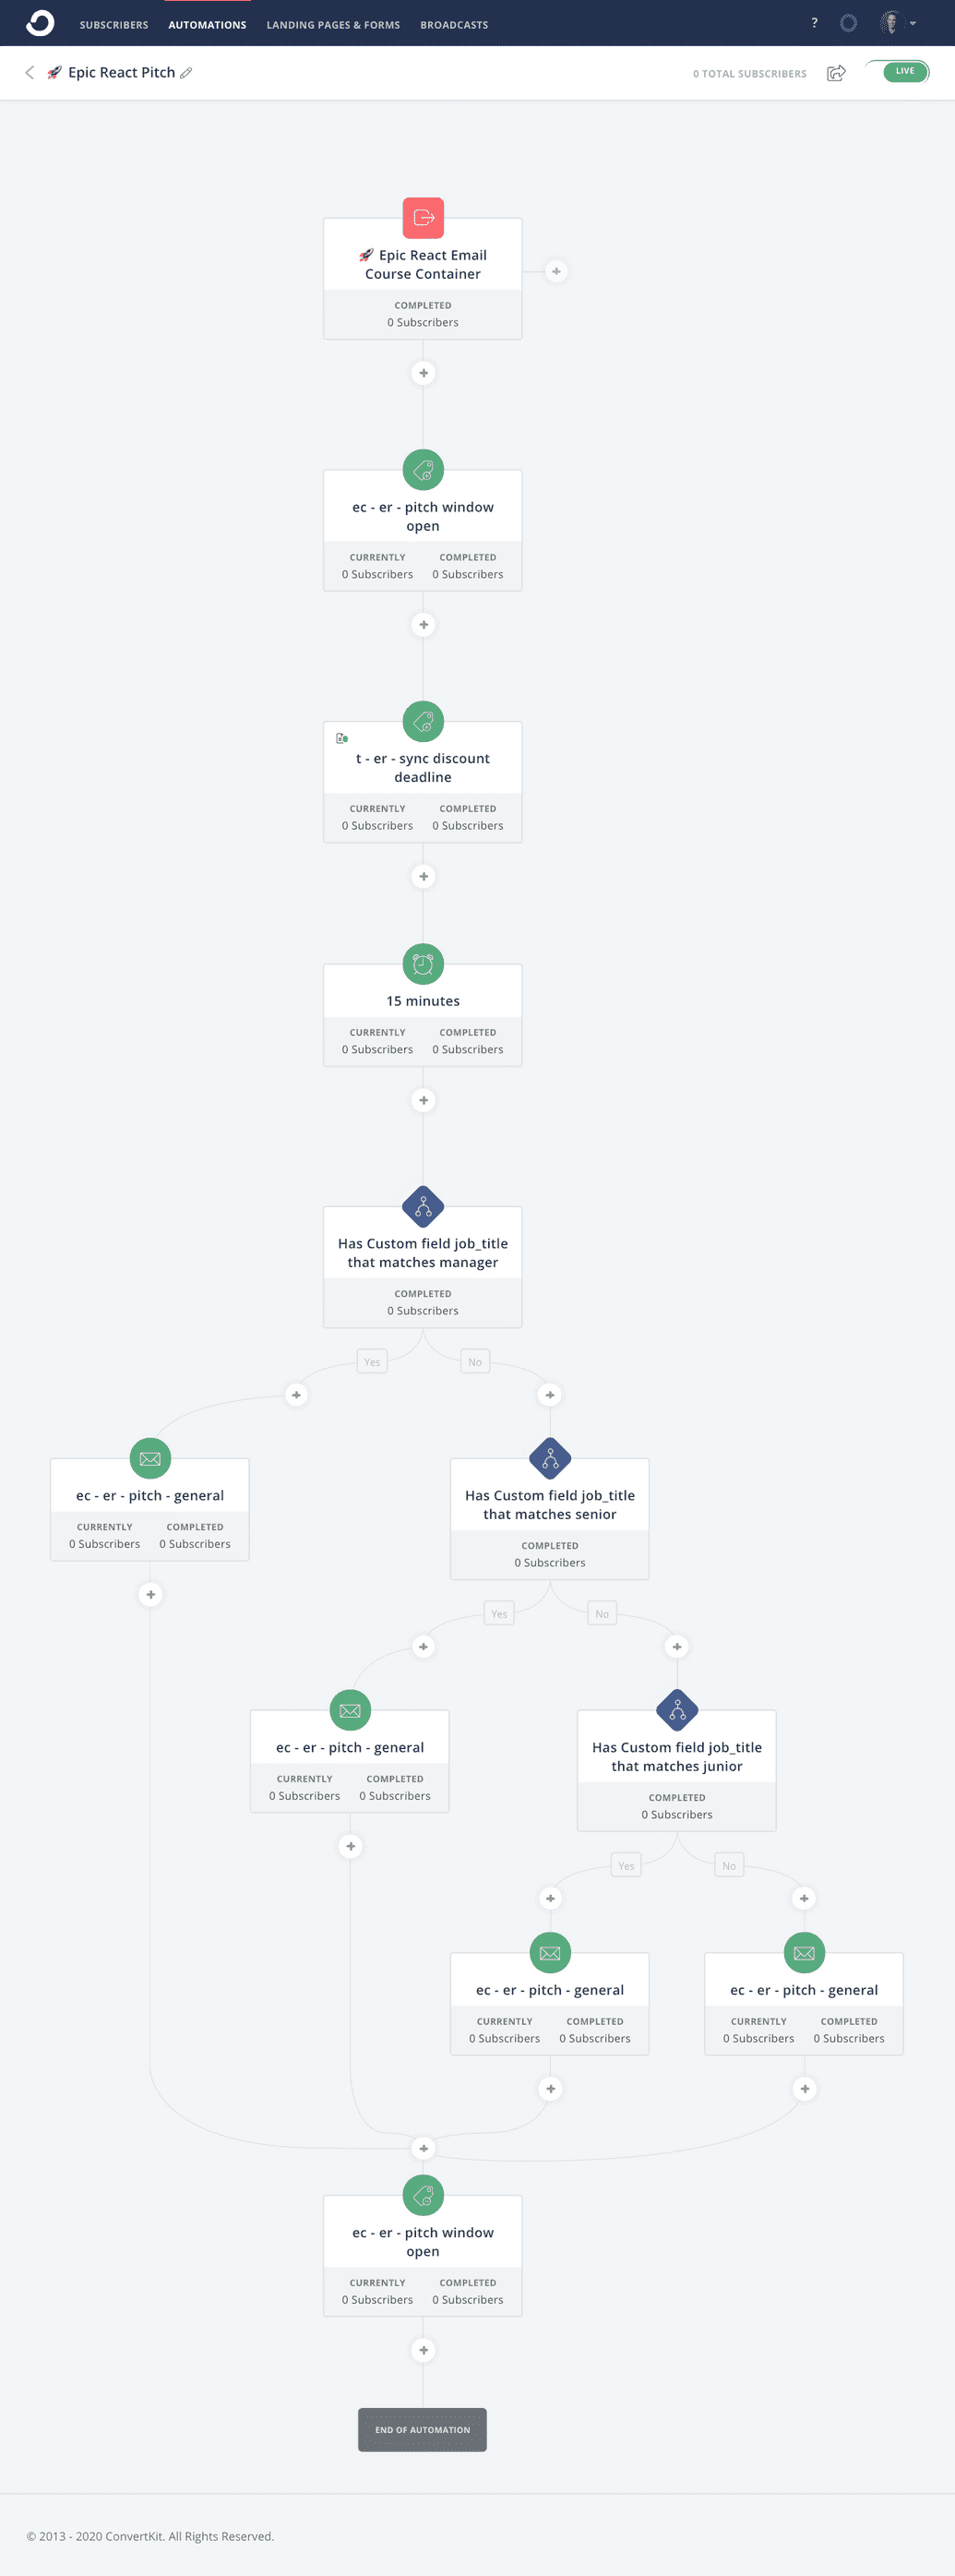 screenshot of the sales pitch automation in convertkit